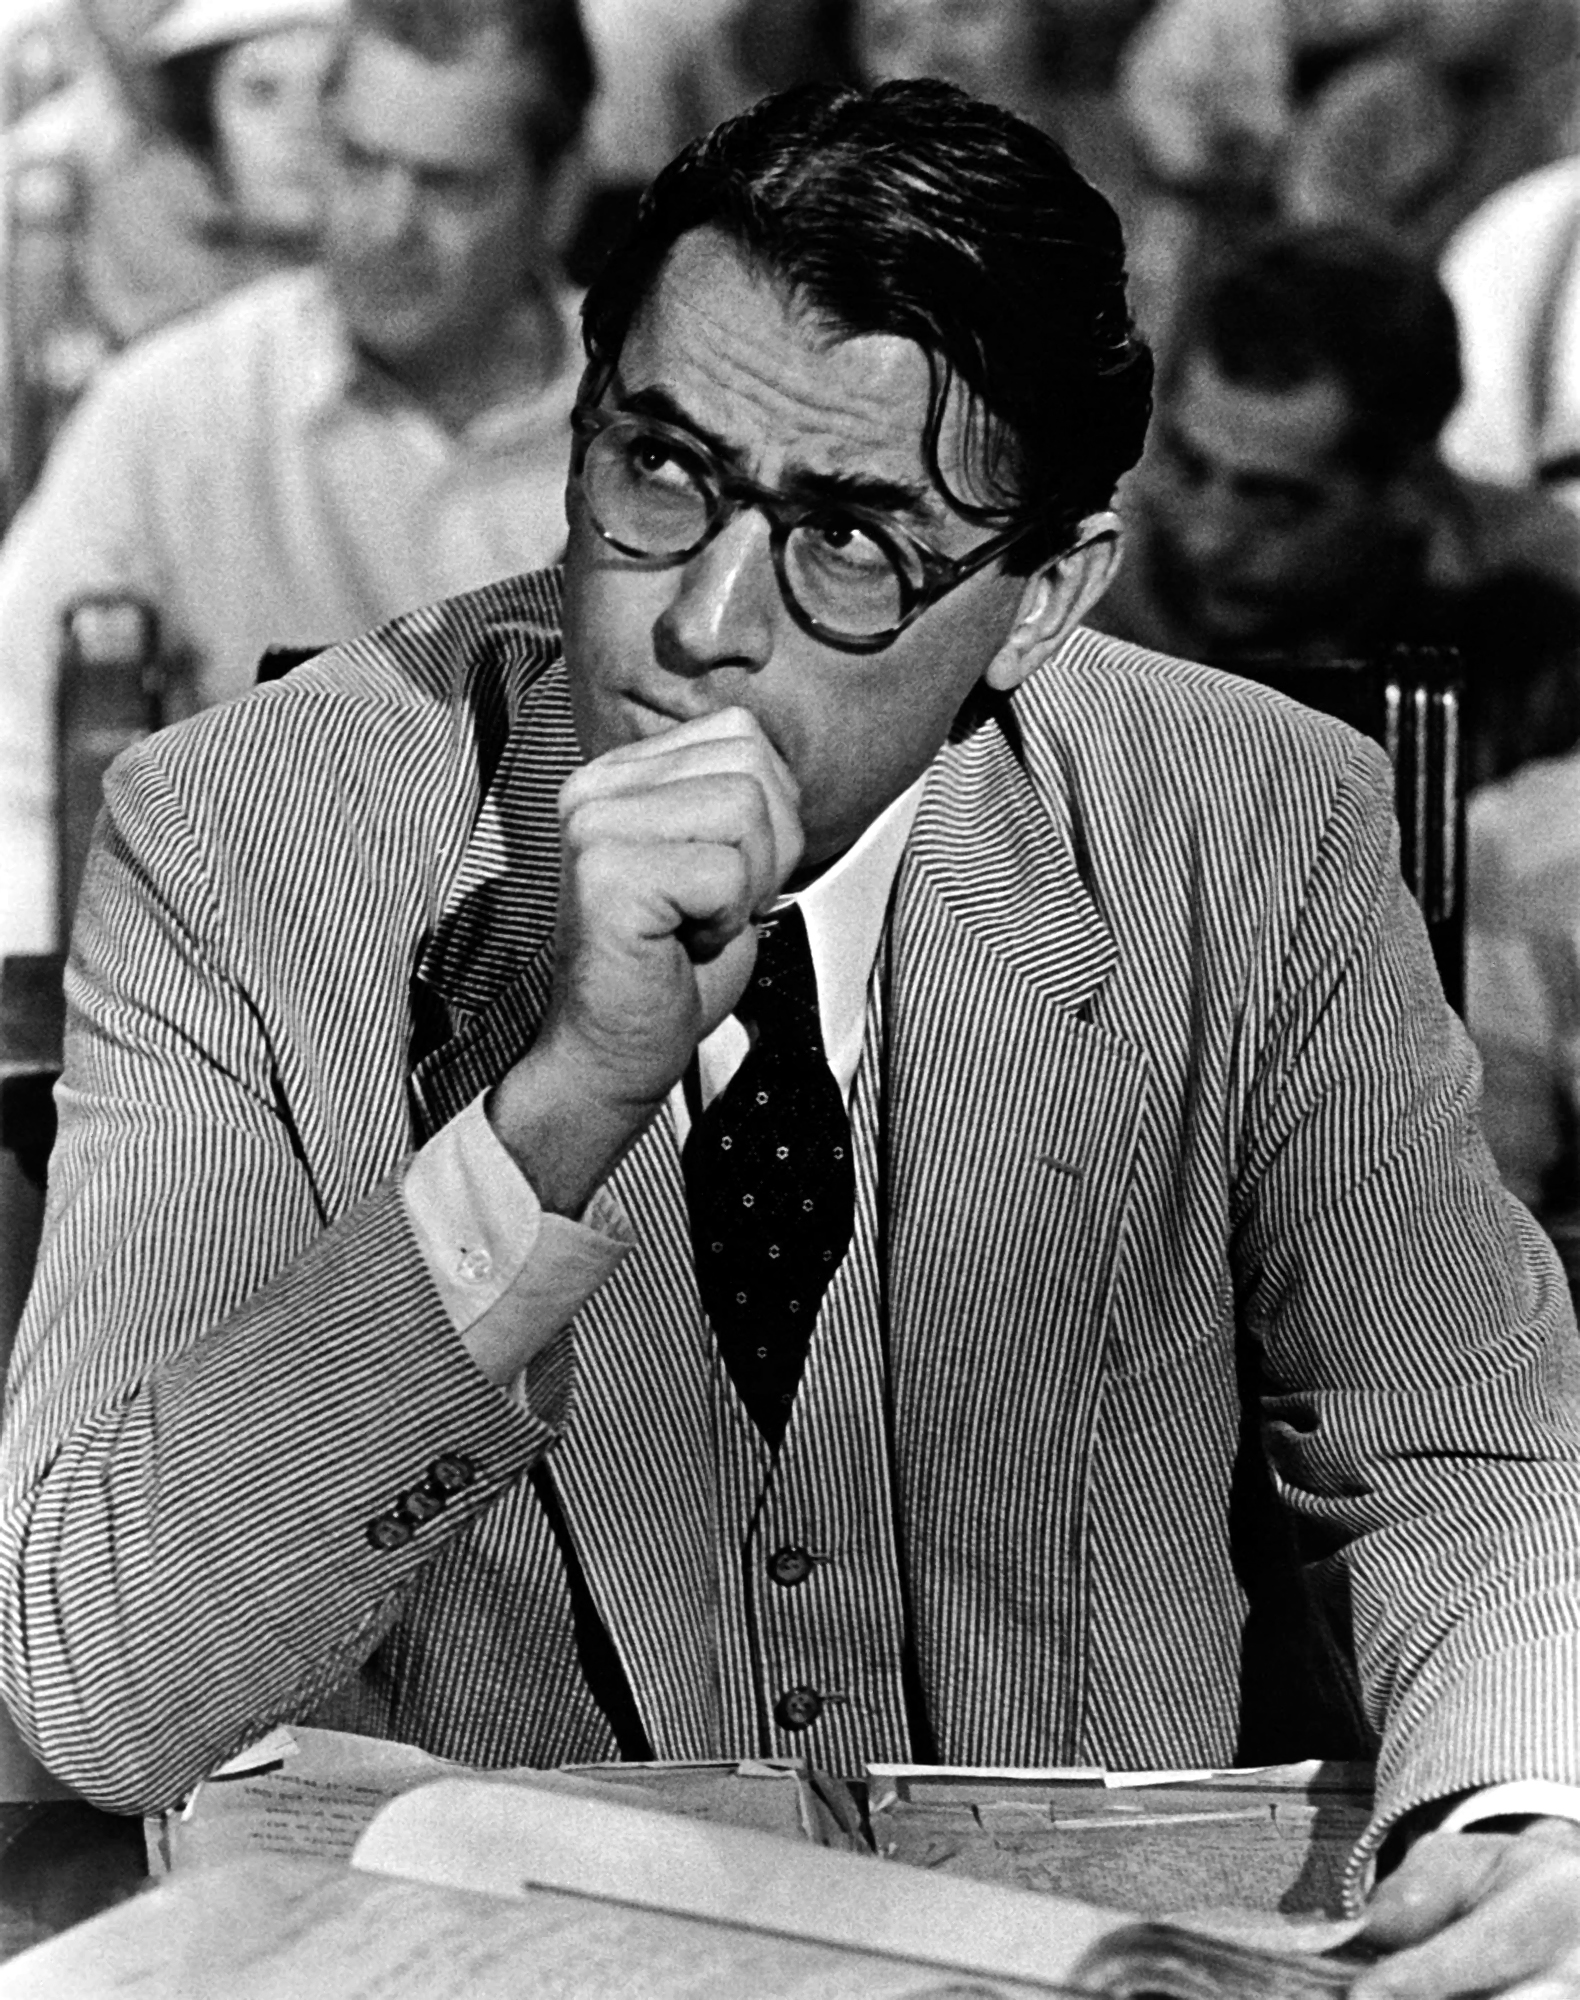 Gregory peck to kill a mockingbird classic movie actor robert